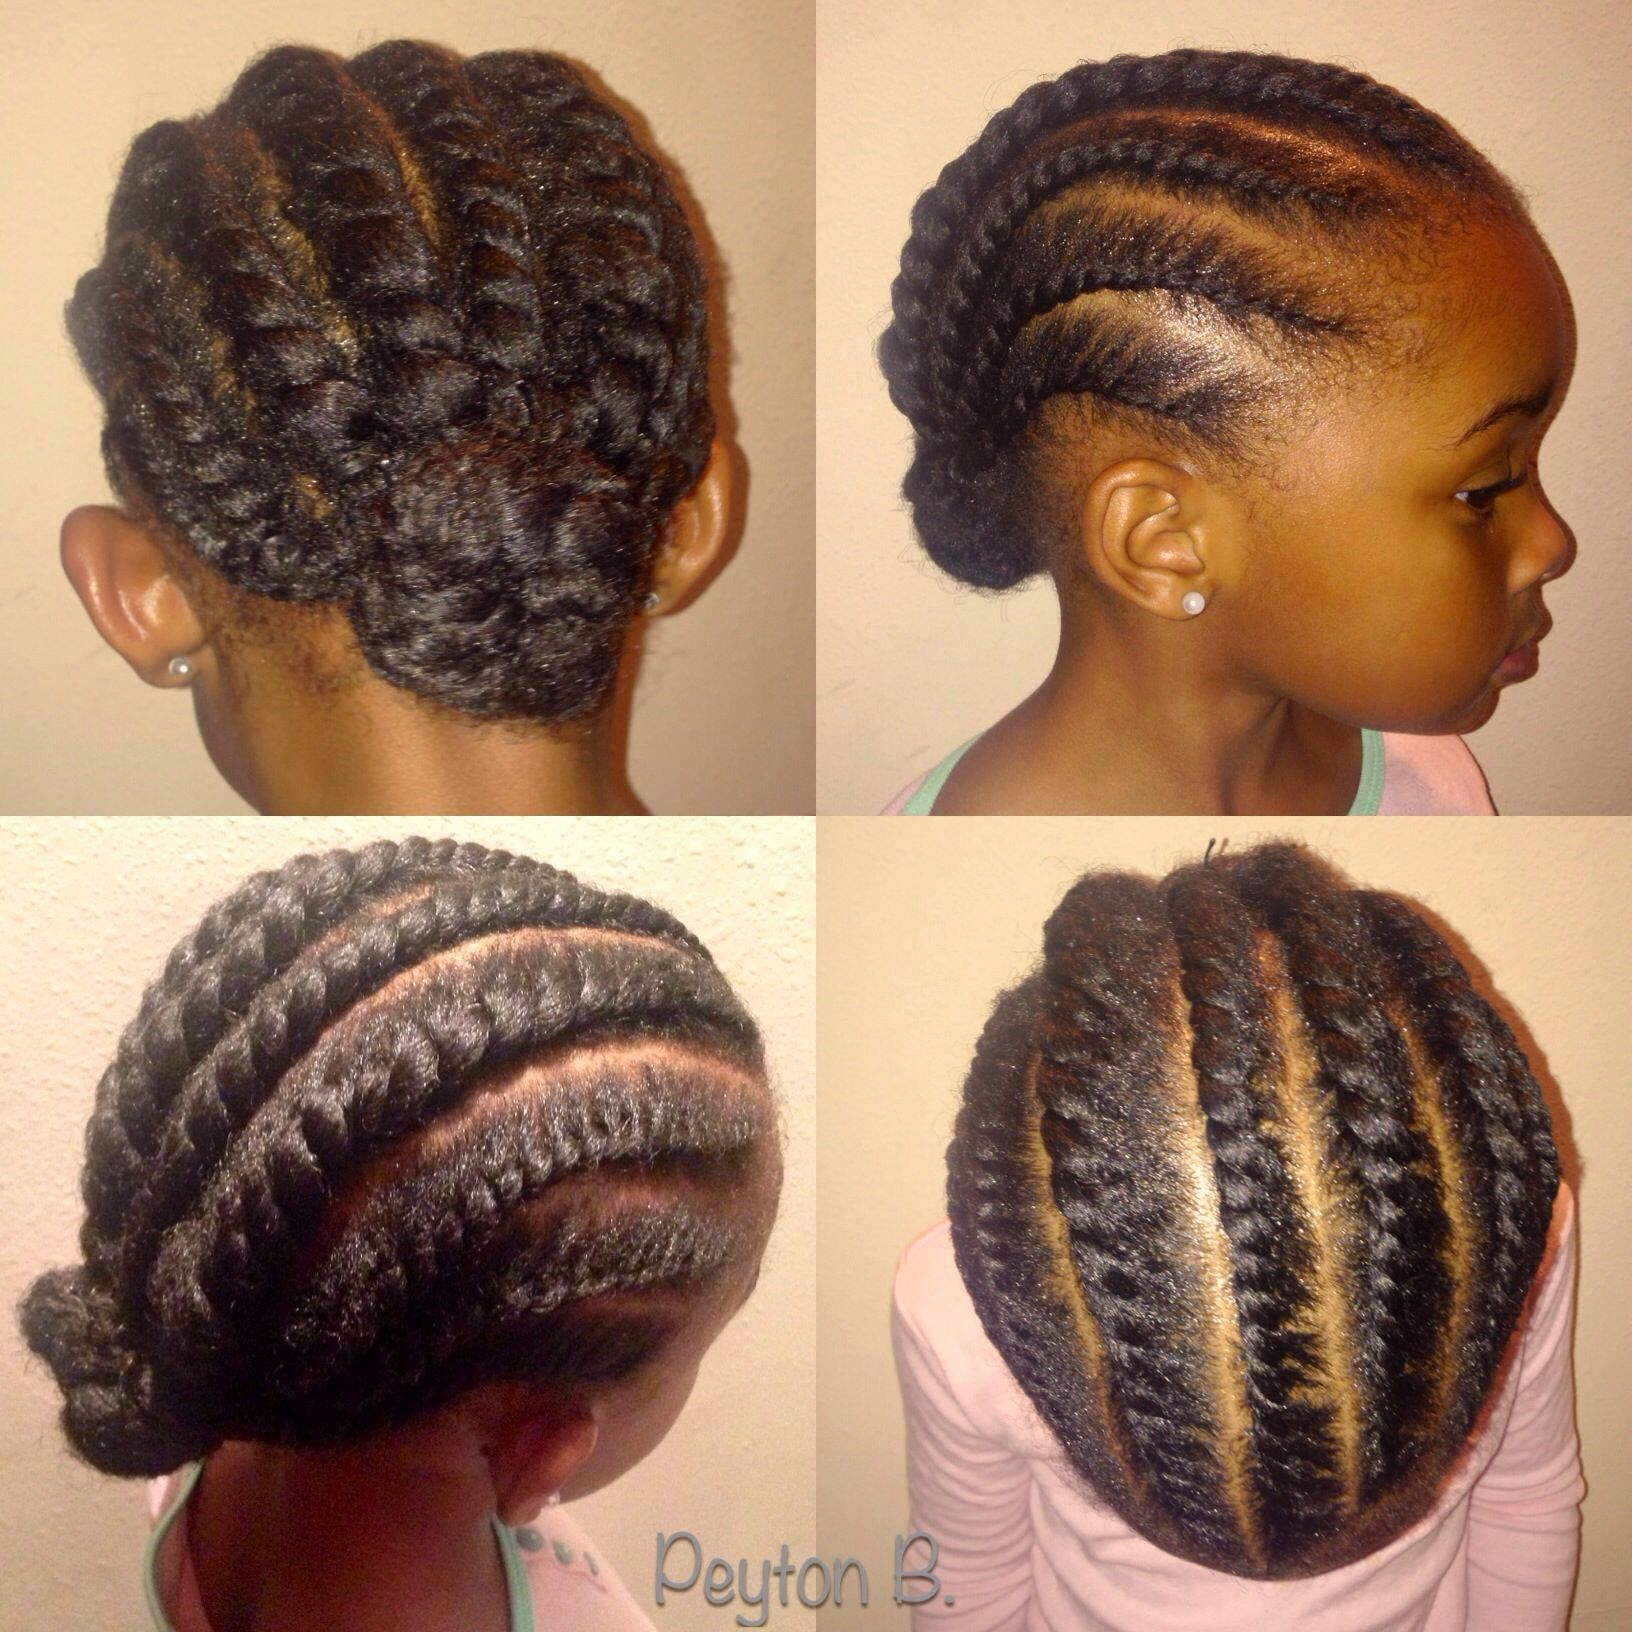 Swell Two Strand Twists Protective Styles And Strands On Pinterest Short Hairstyles For Black Women Fulllsitofus